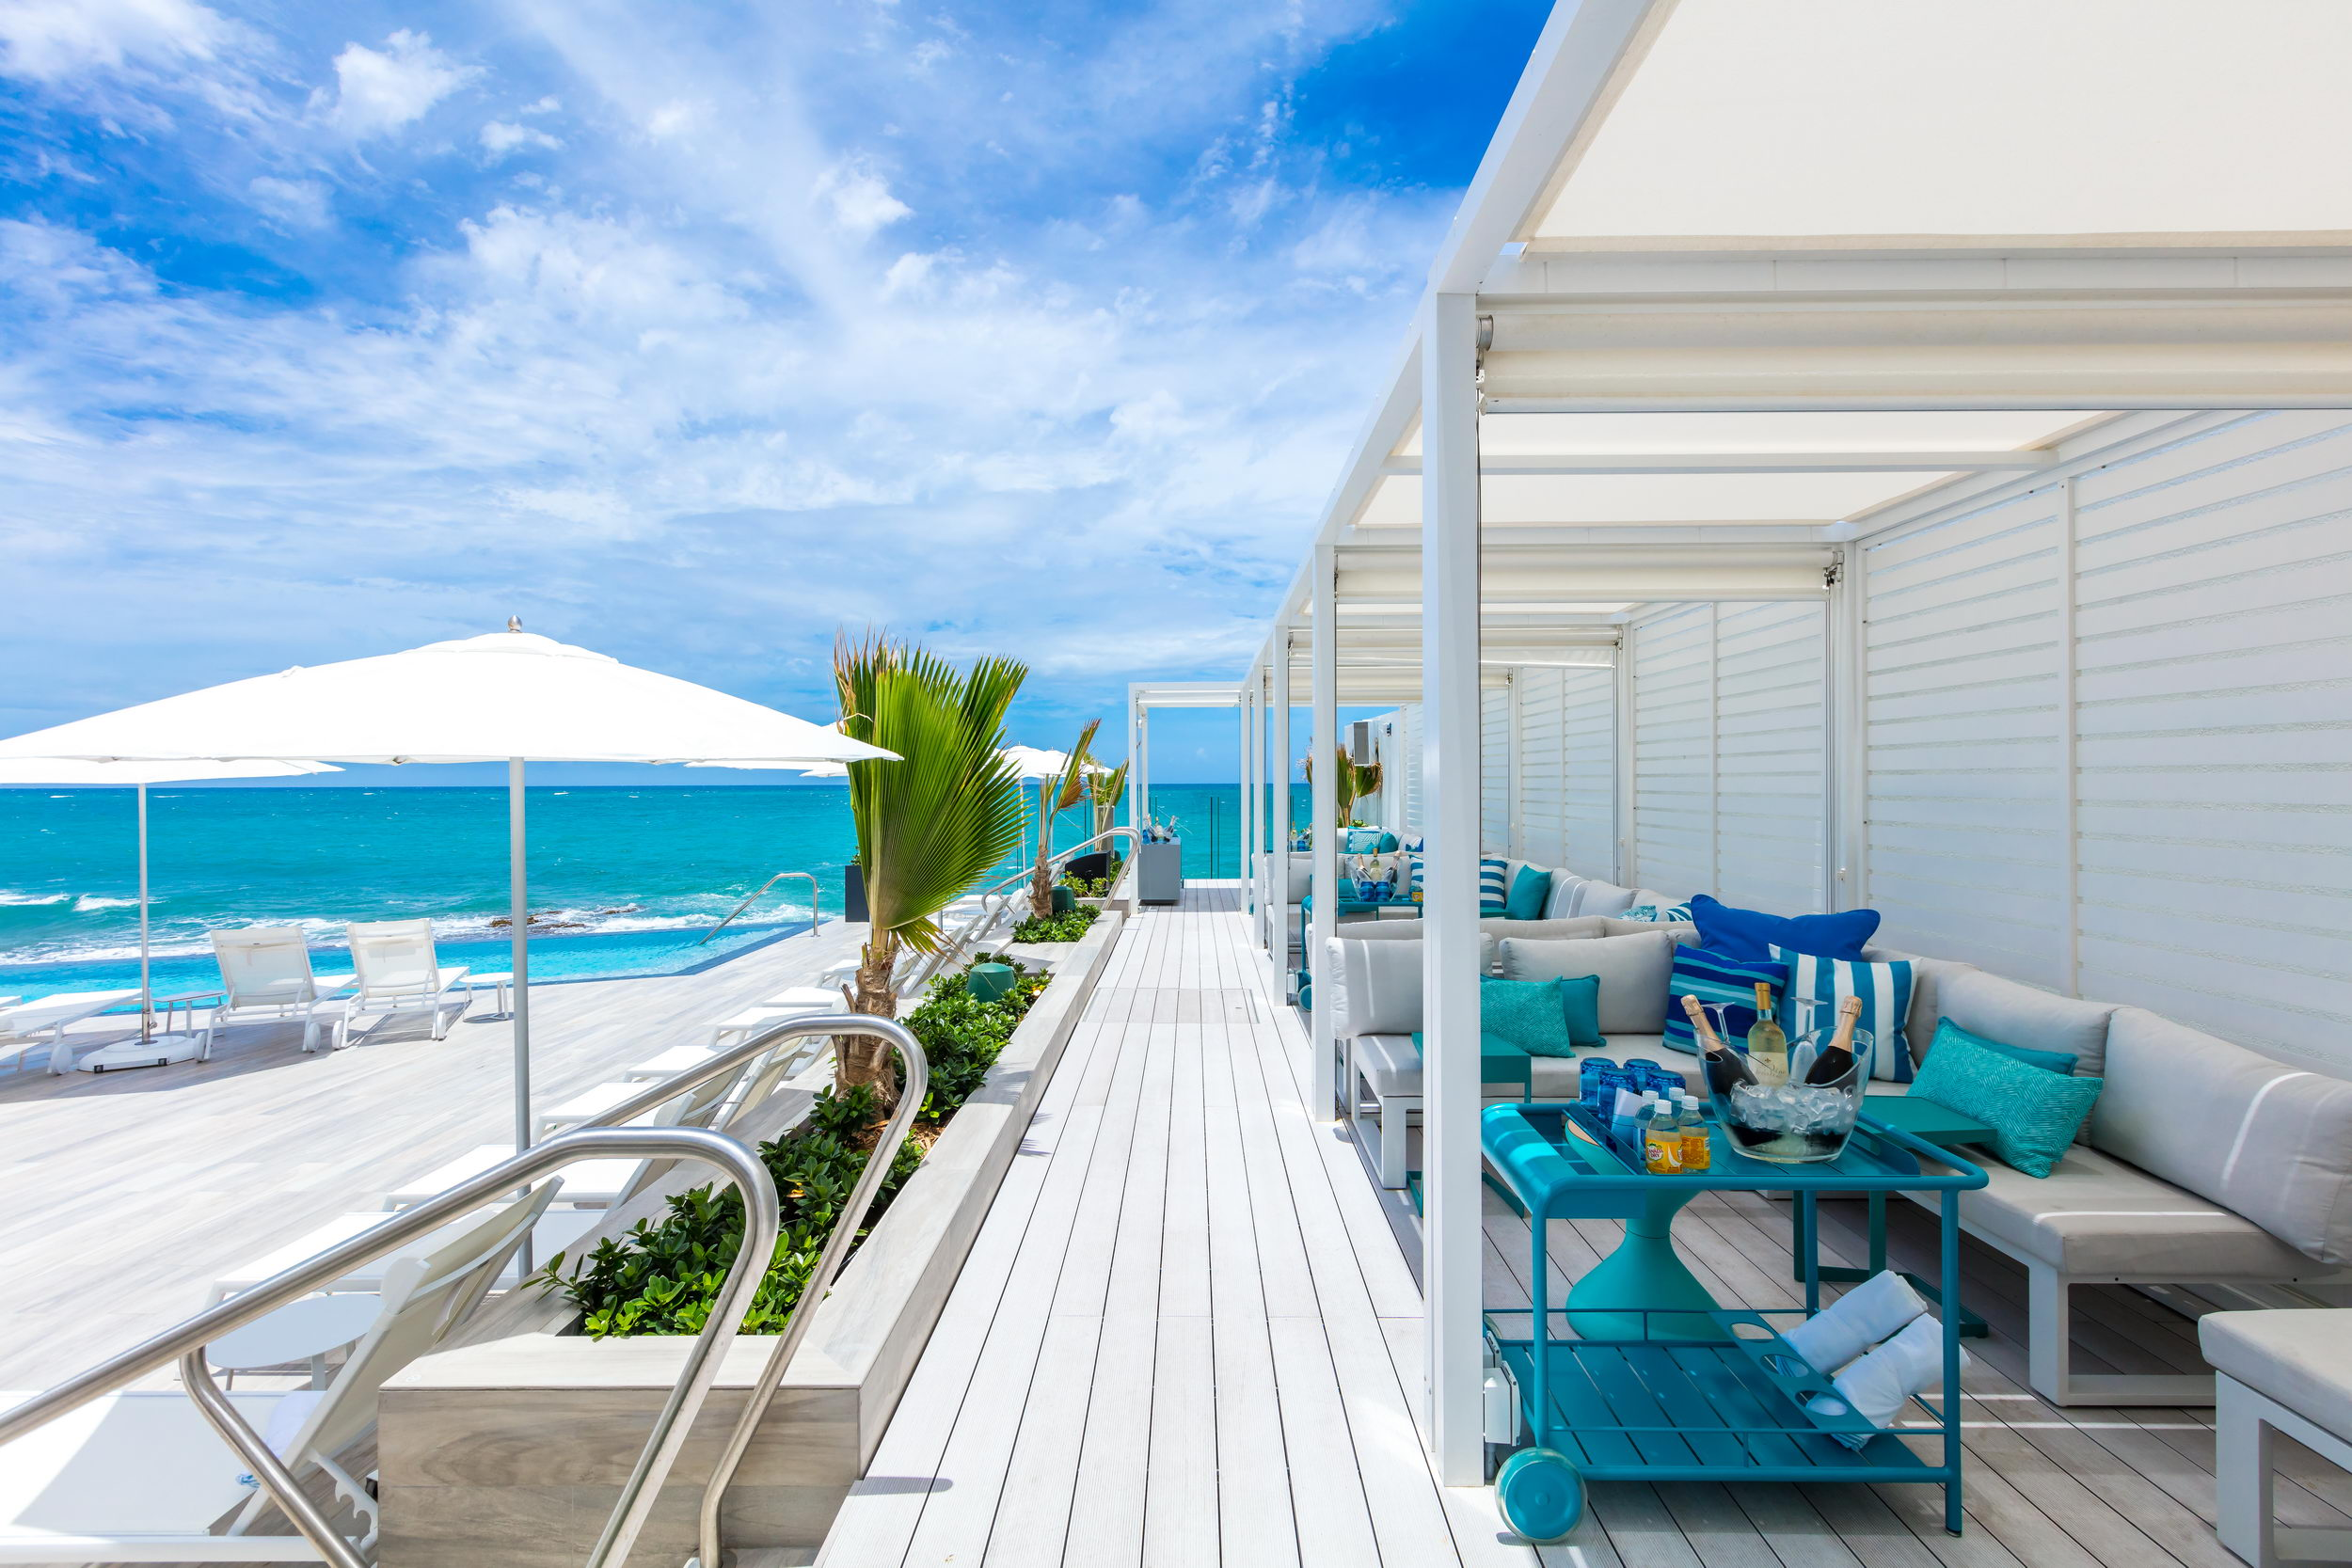 Poolside cabanas and ocean view